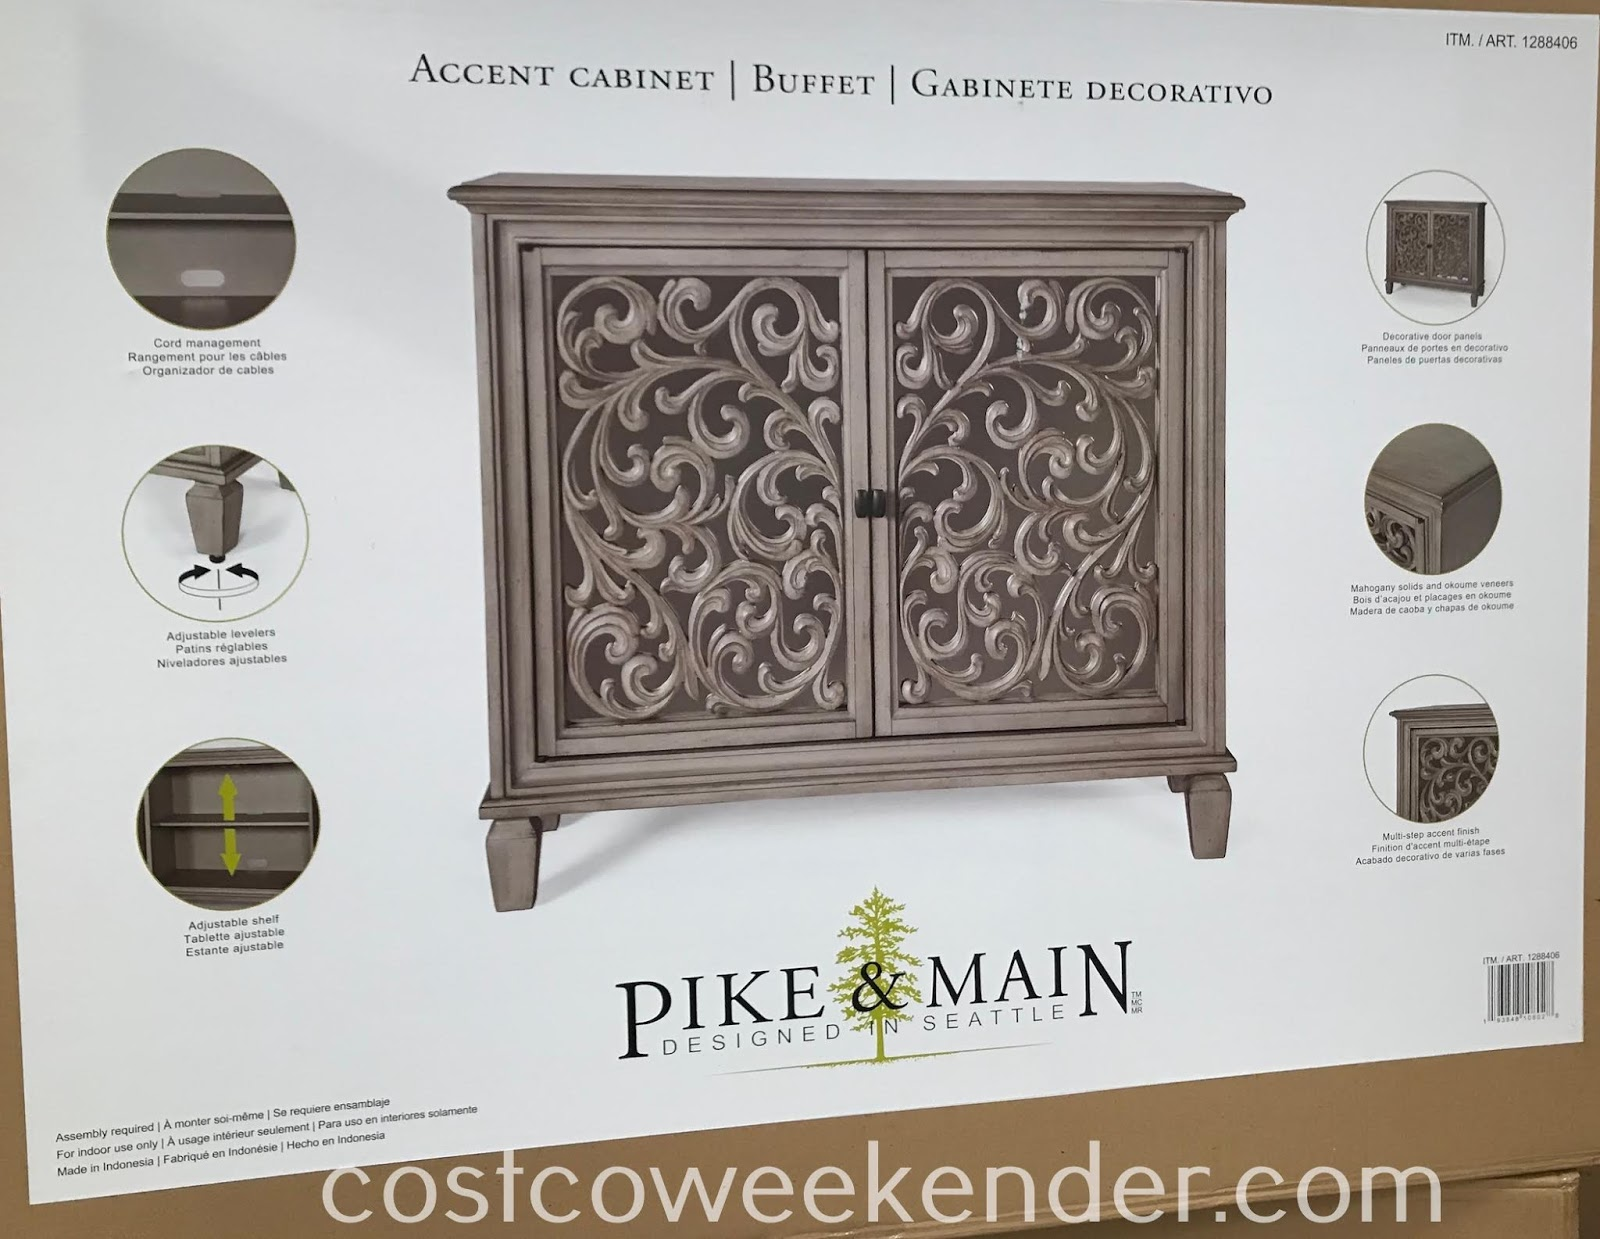 Costco 1288406 - Pike & Main Hermoine Accent Cabinet: great for any home